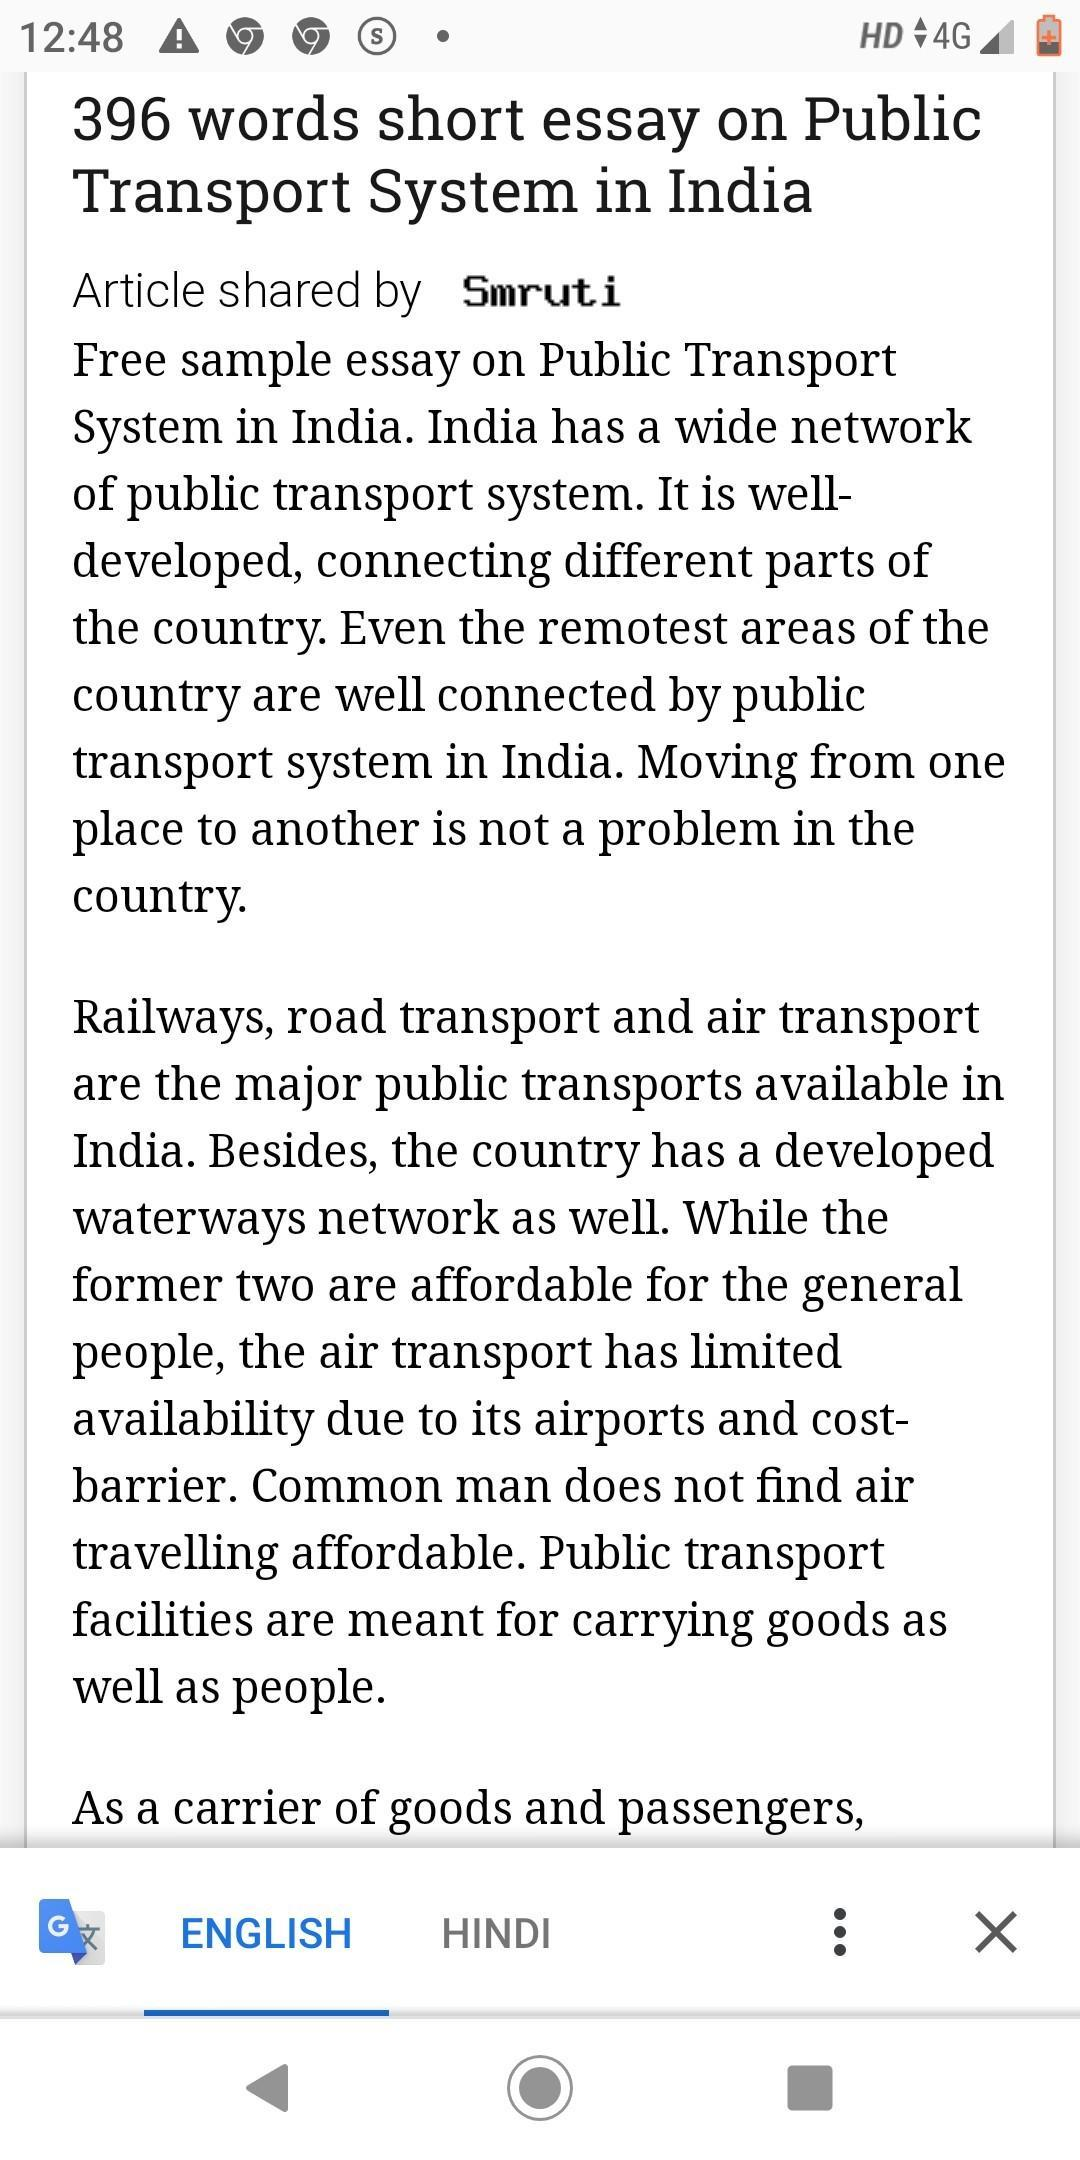 hay friends,Please answerEssay on transport system of more